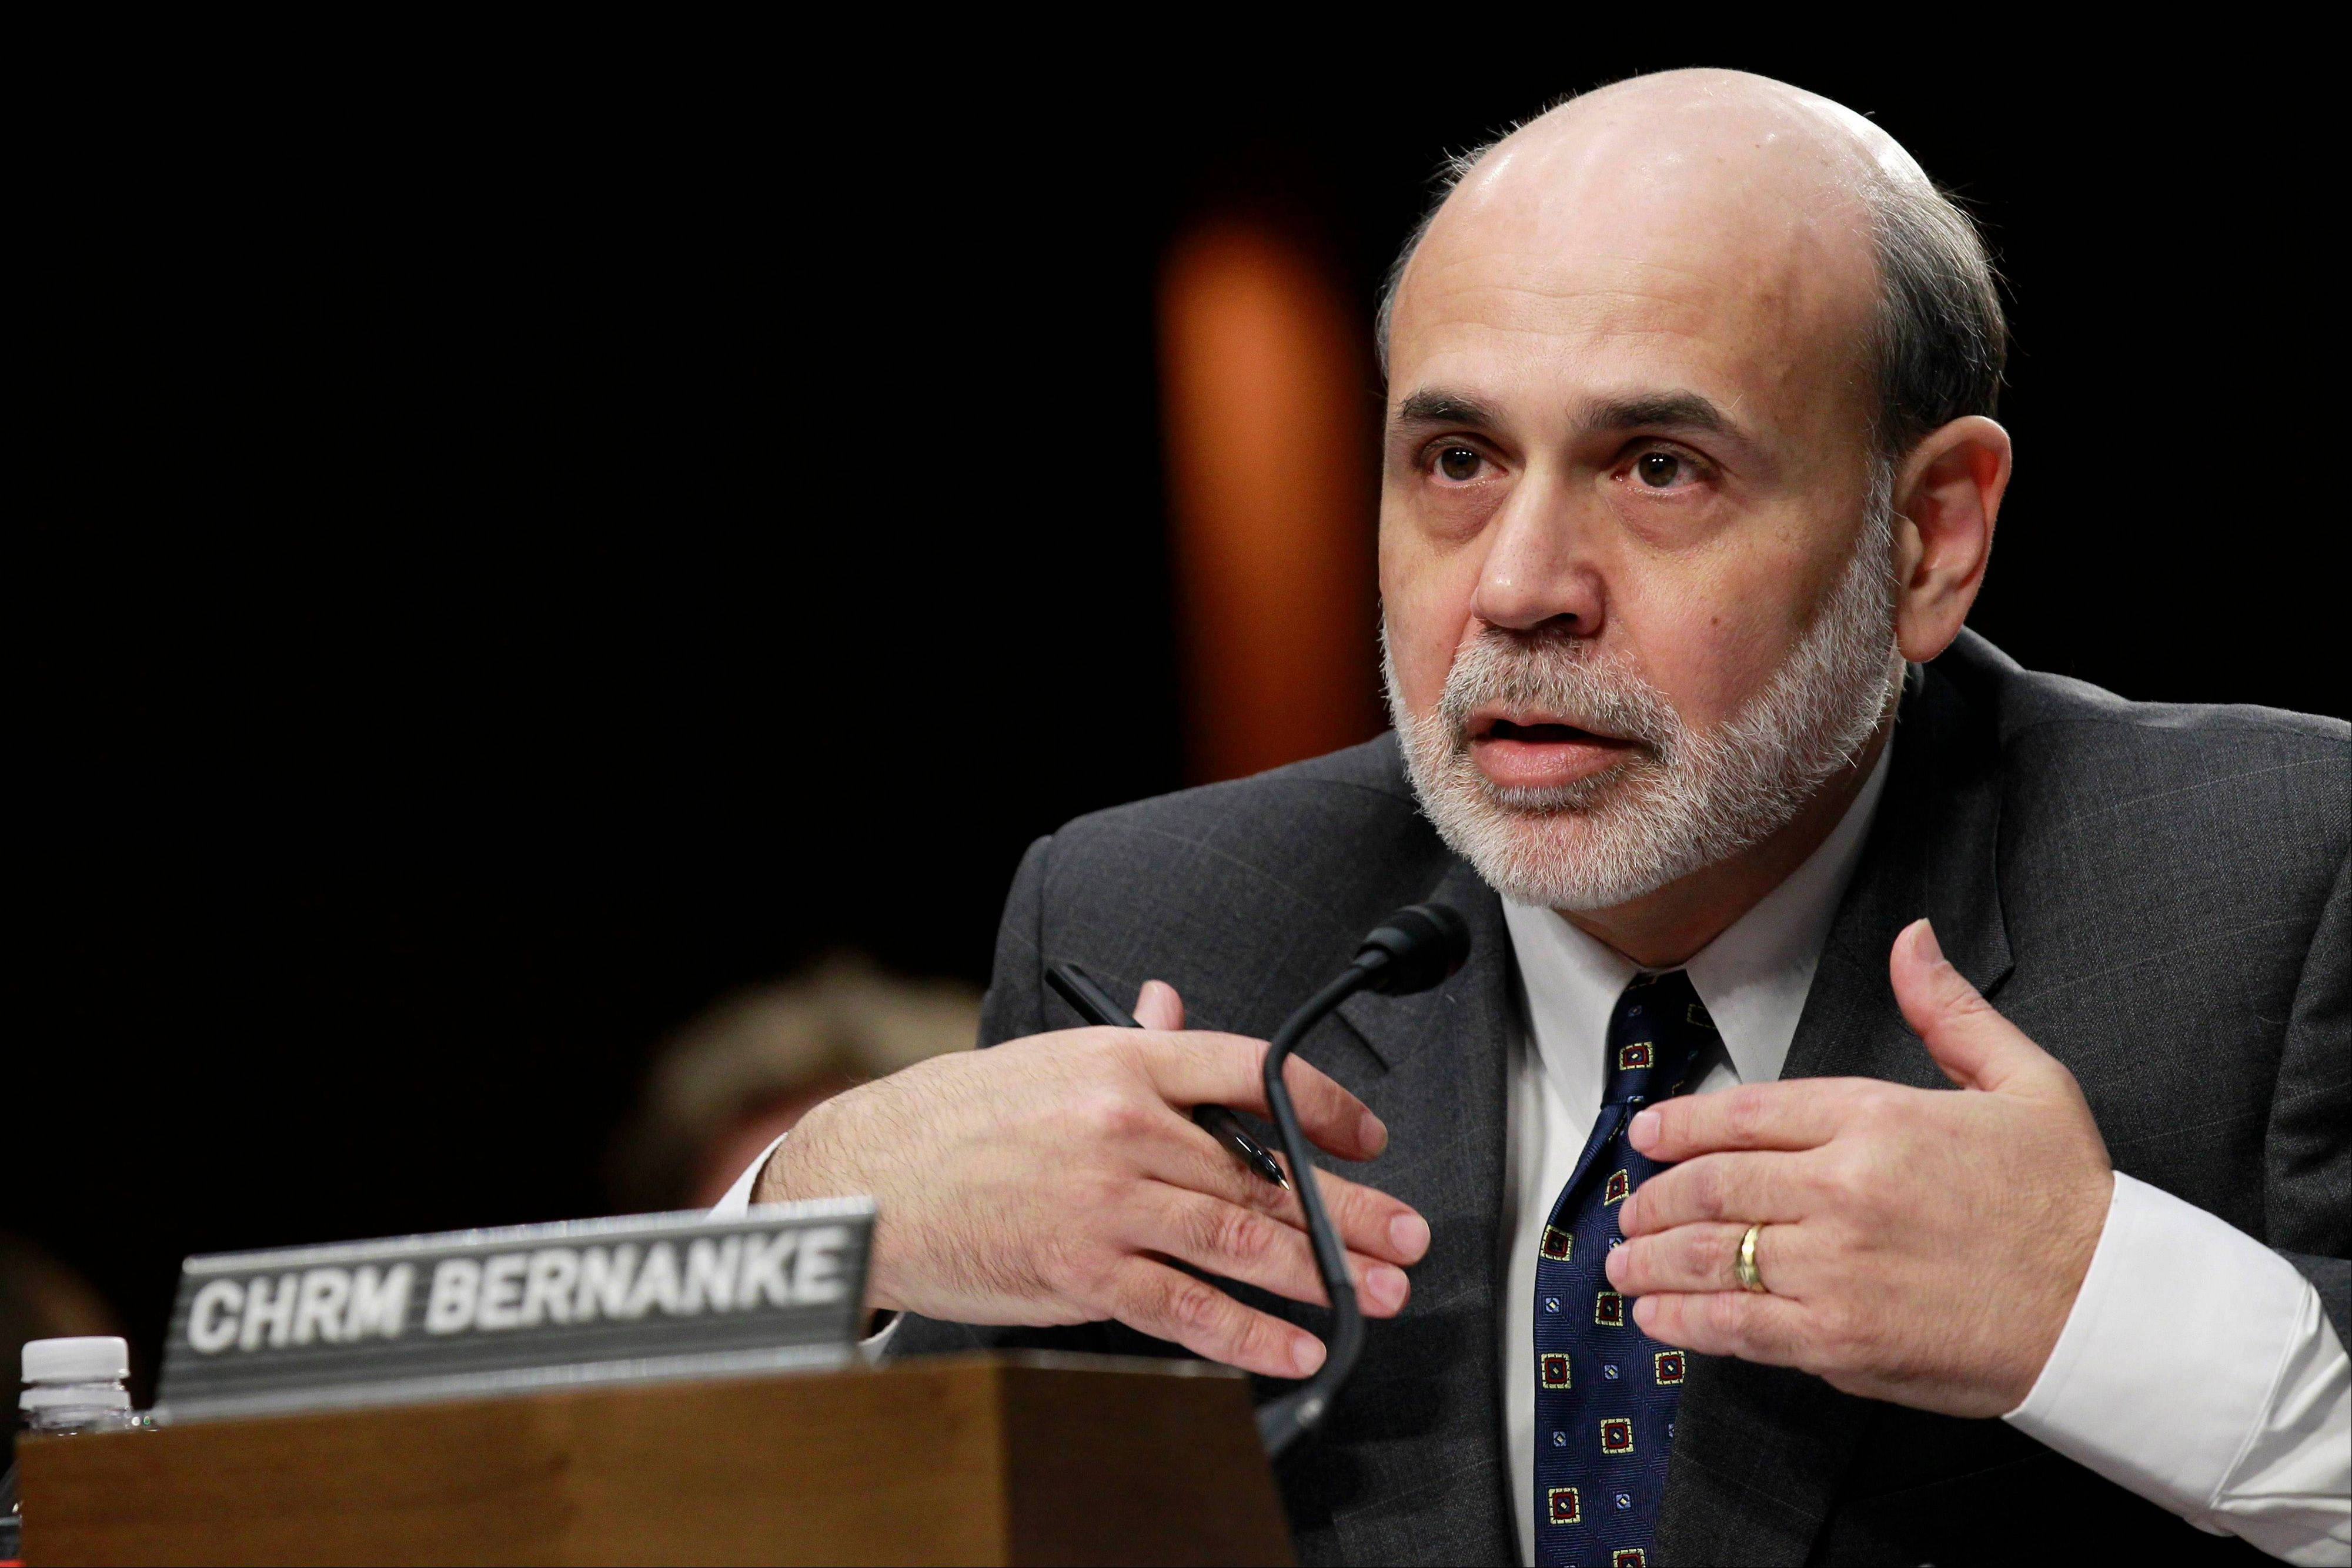 The financial world looks to Federal Reserve Board Chairman Ben Bernanke this week to clarify the Fed's timetable on economic stimulus.